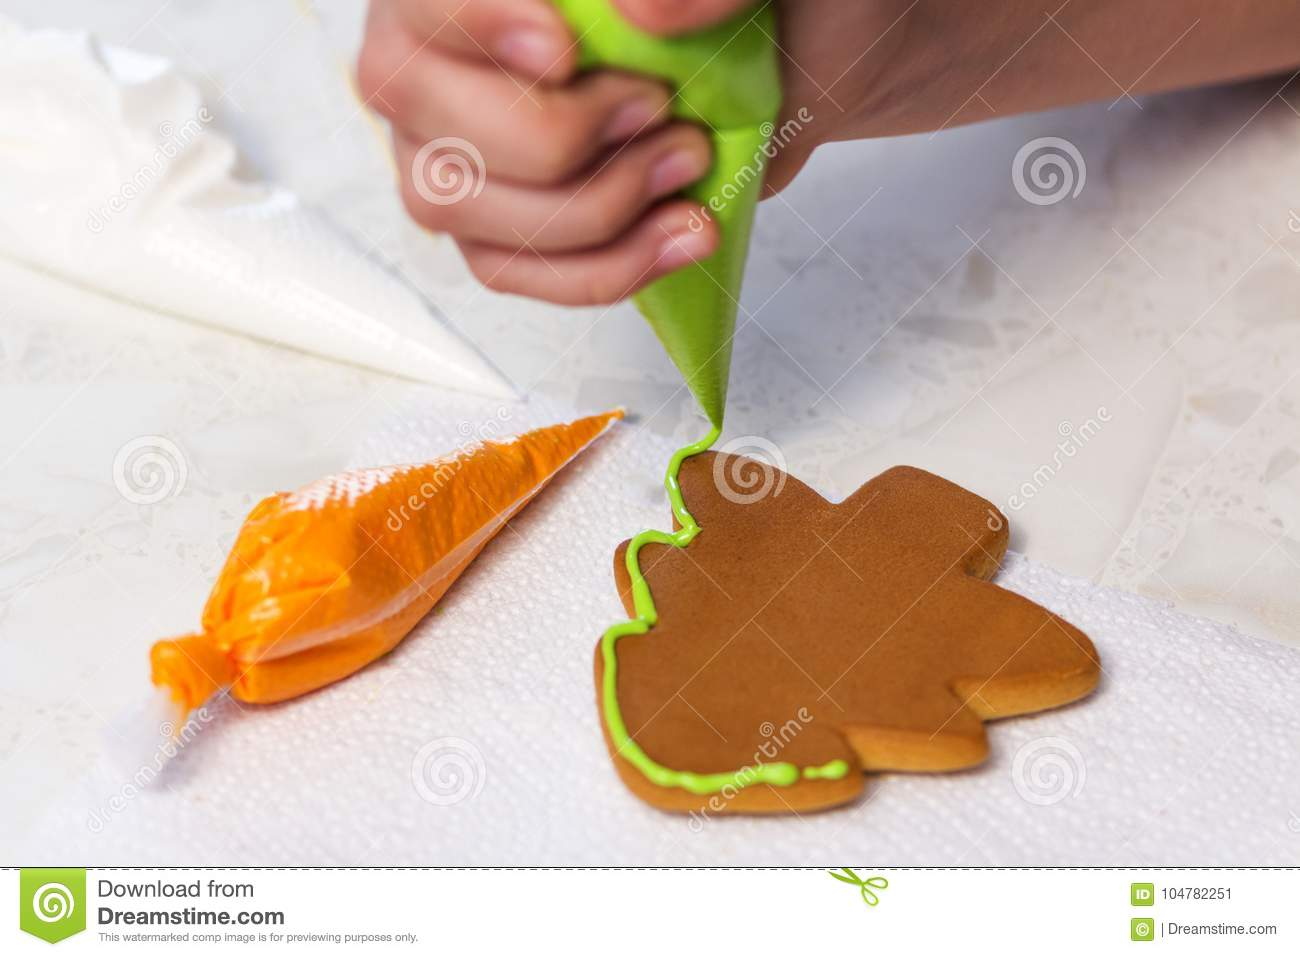 Baking holiday cookies. The child decorates homemade gingerbread in the form of a Christmas tree with green glaze.